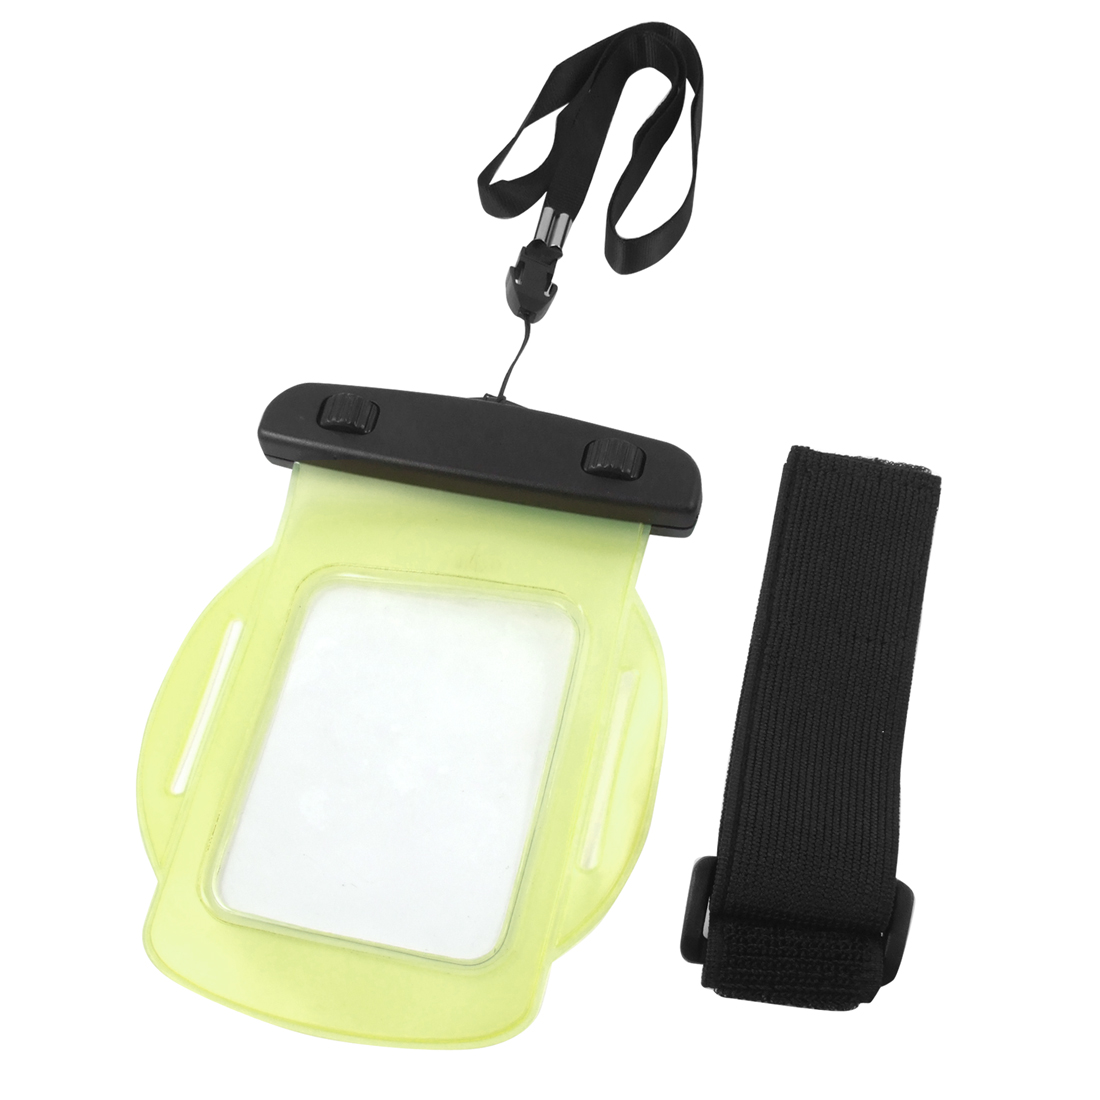 Water Resistant Plastic Yellow Pouch Bag w Neck Strap Arm Band for iPhone 3G 3GS 4 4G